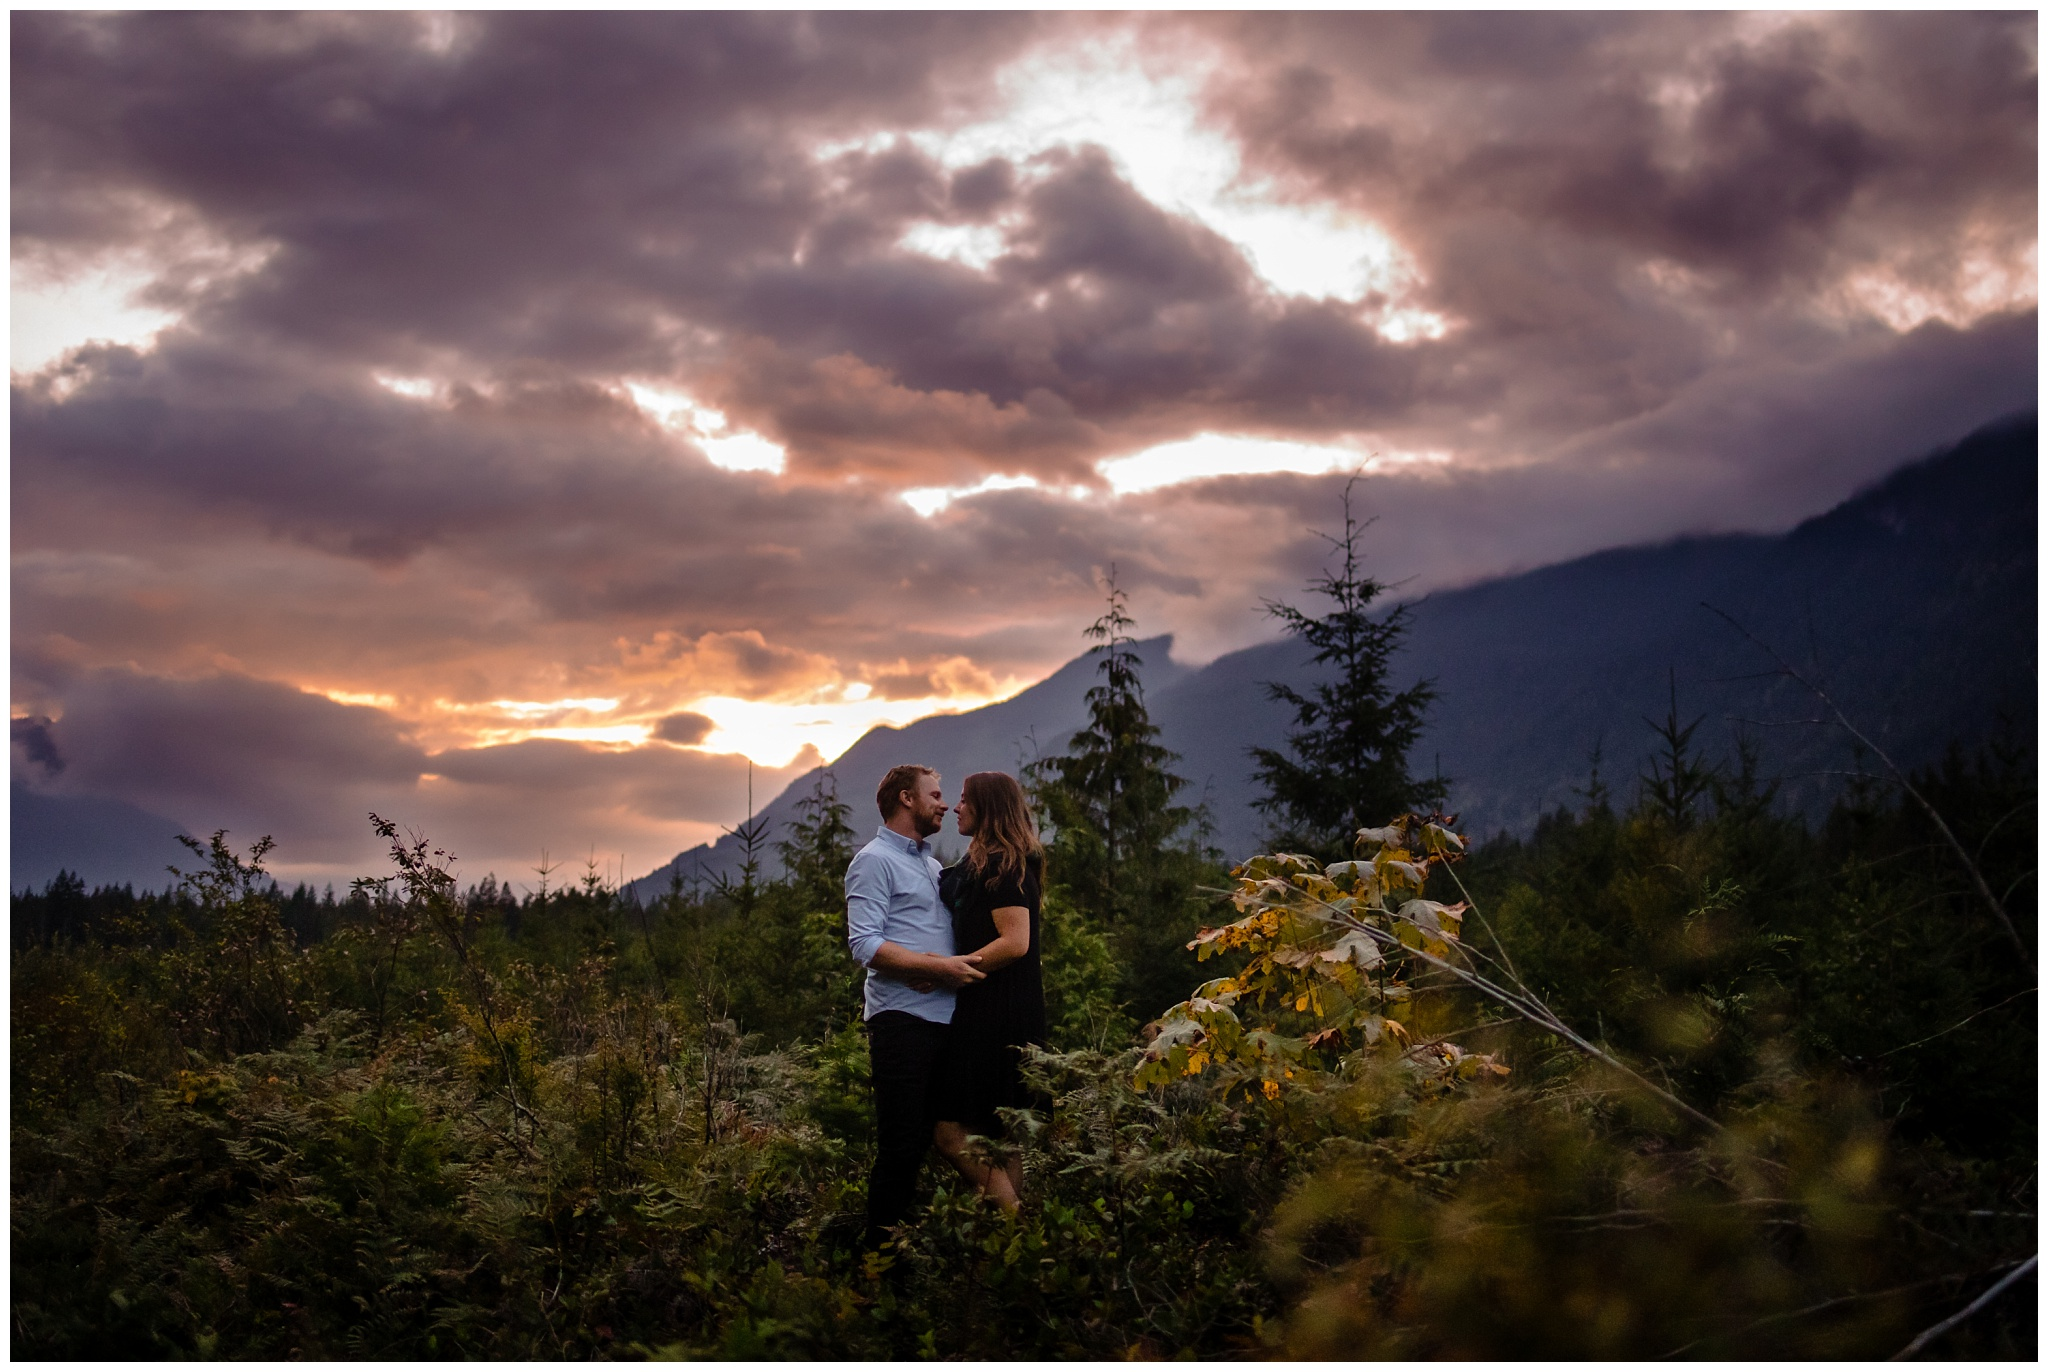 Chilliwack Lake Fall Engagement Photo Inspiration Poses Chilliwack Engagement Photographer_0022.jpg